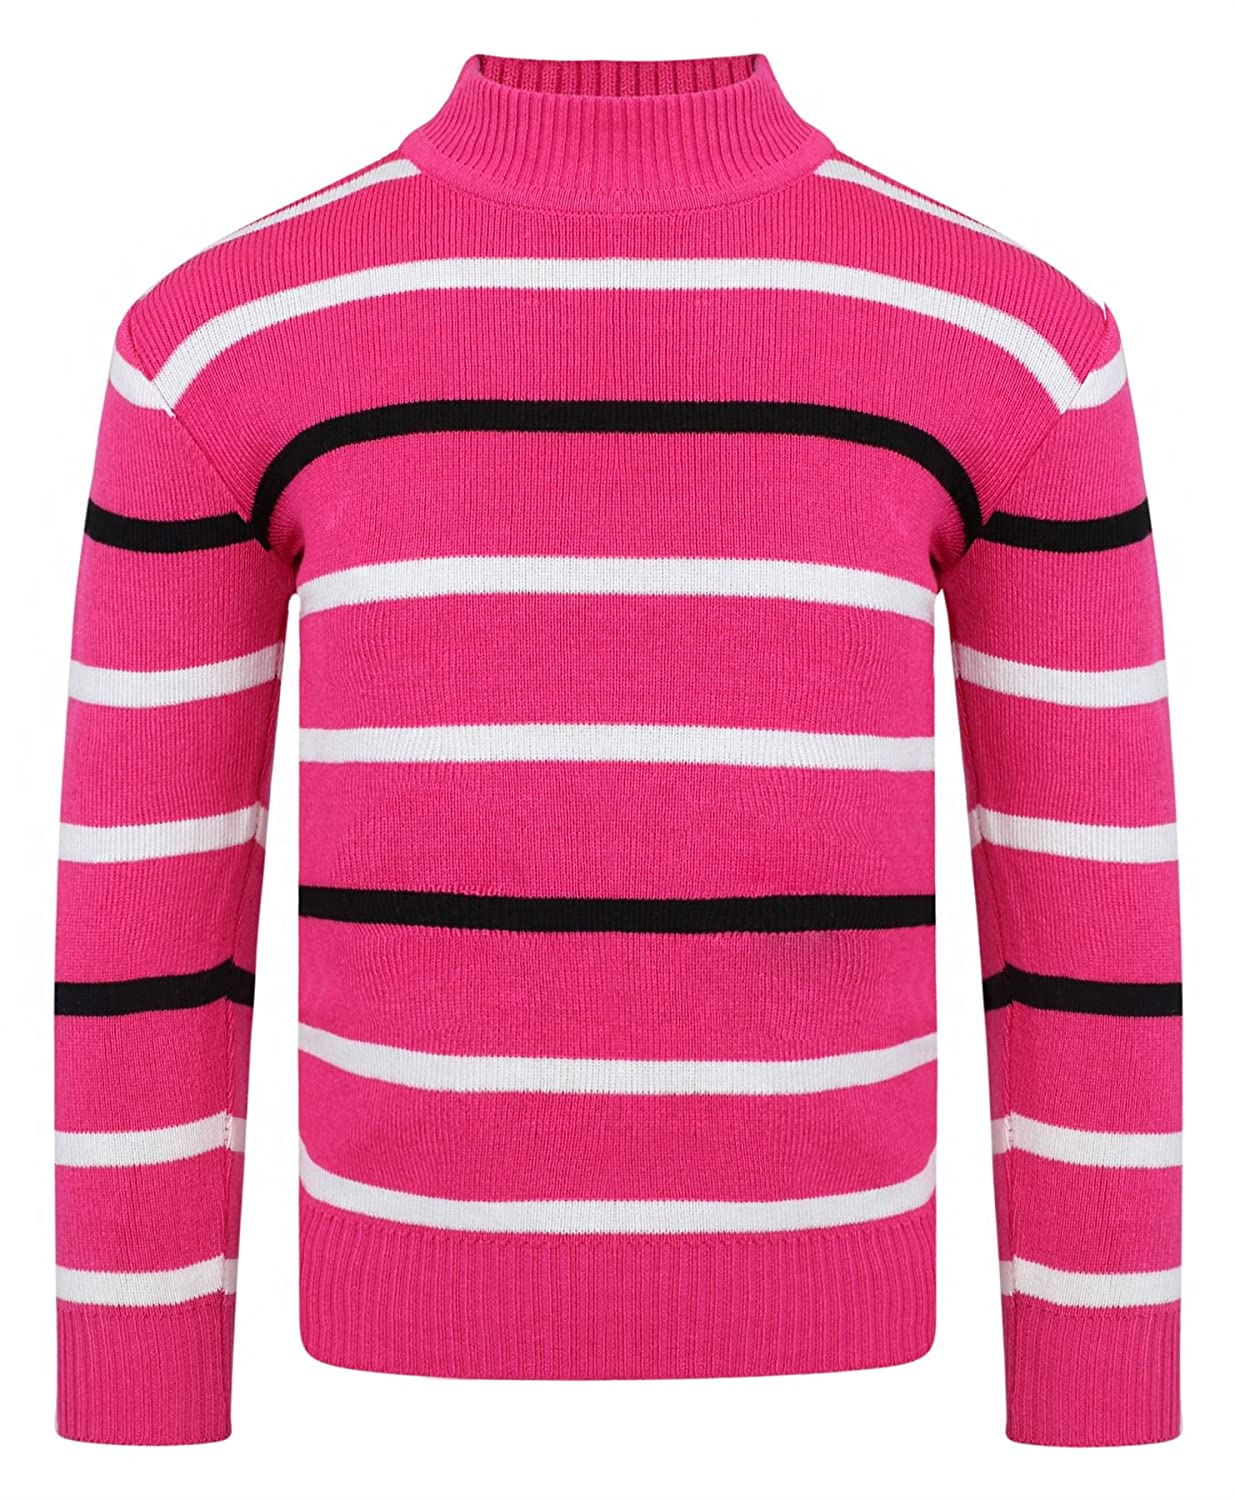 LotMart Girls Striped Knitted Jumper Kids Long Sleeve Zip up Sweater Knit Top